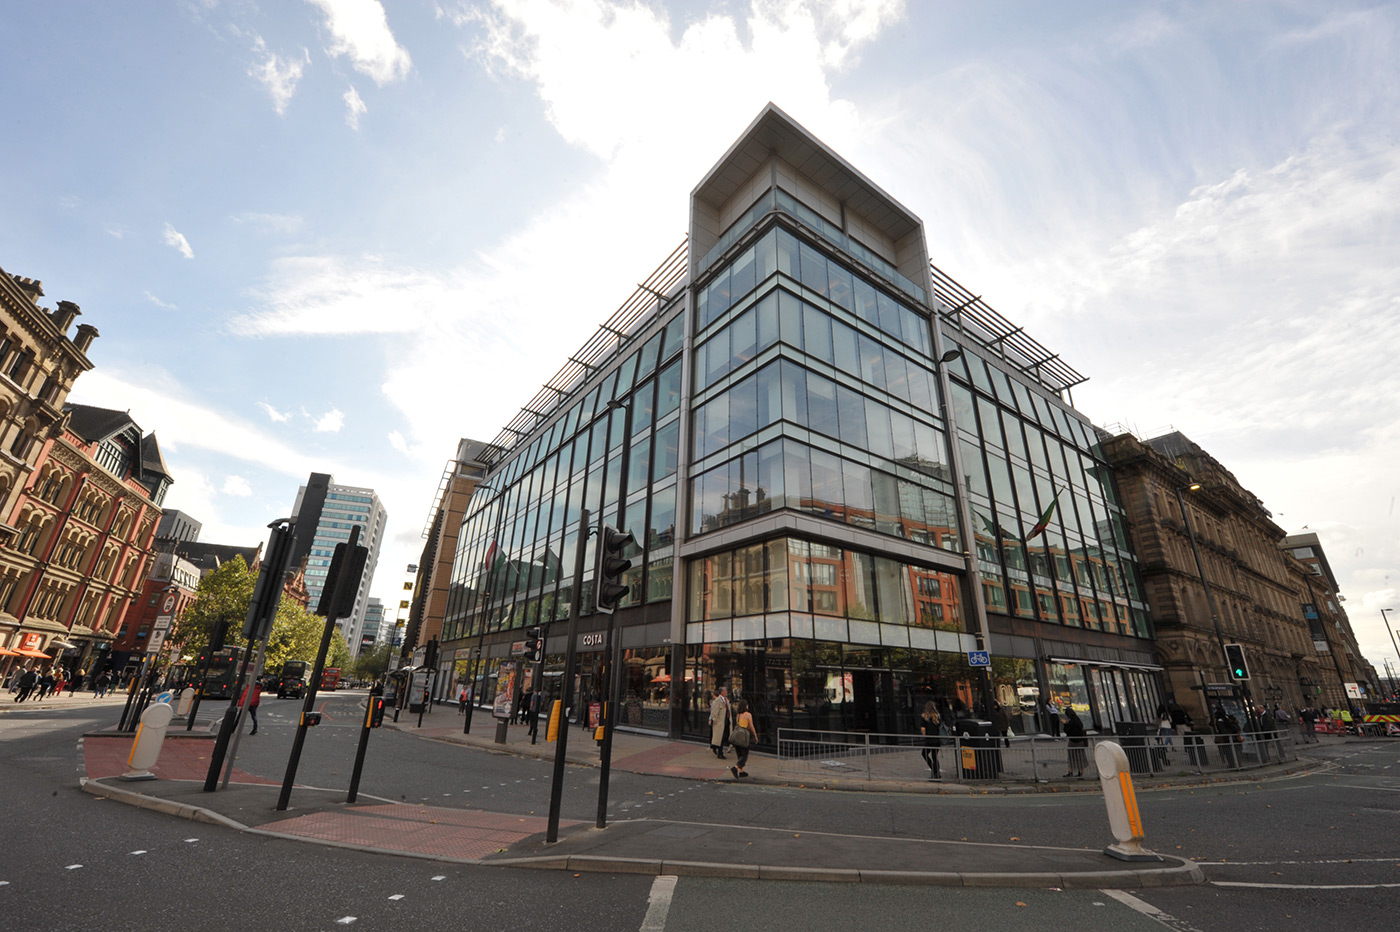 an image of the exterior of One Portland Street